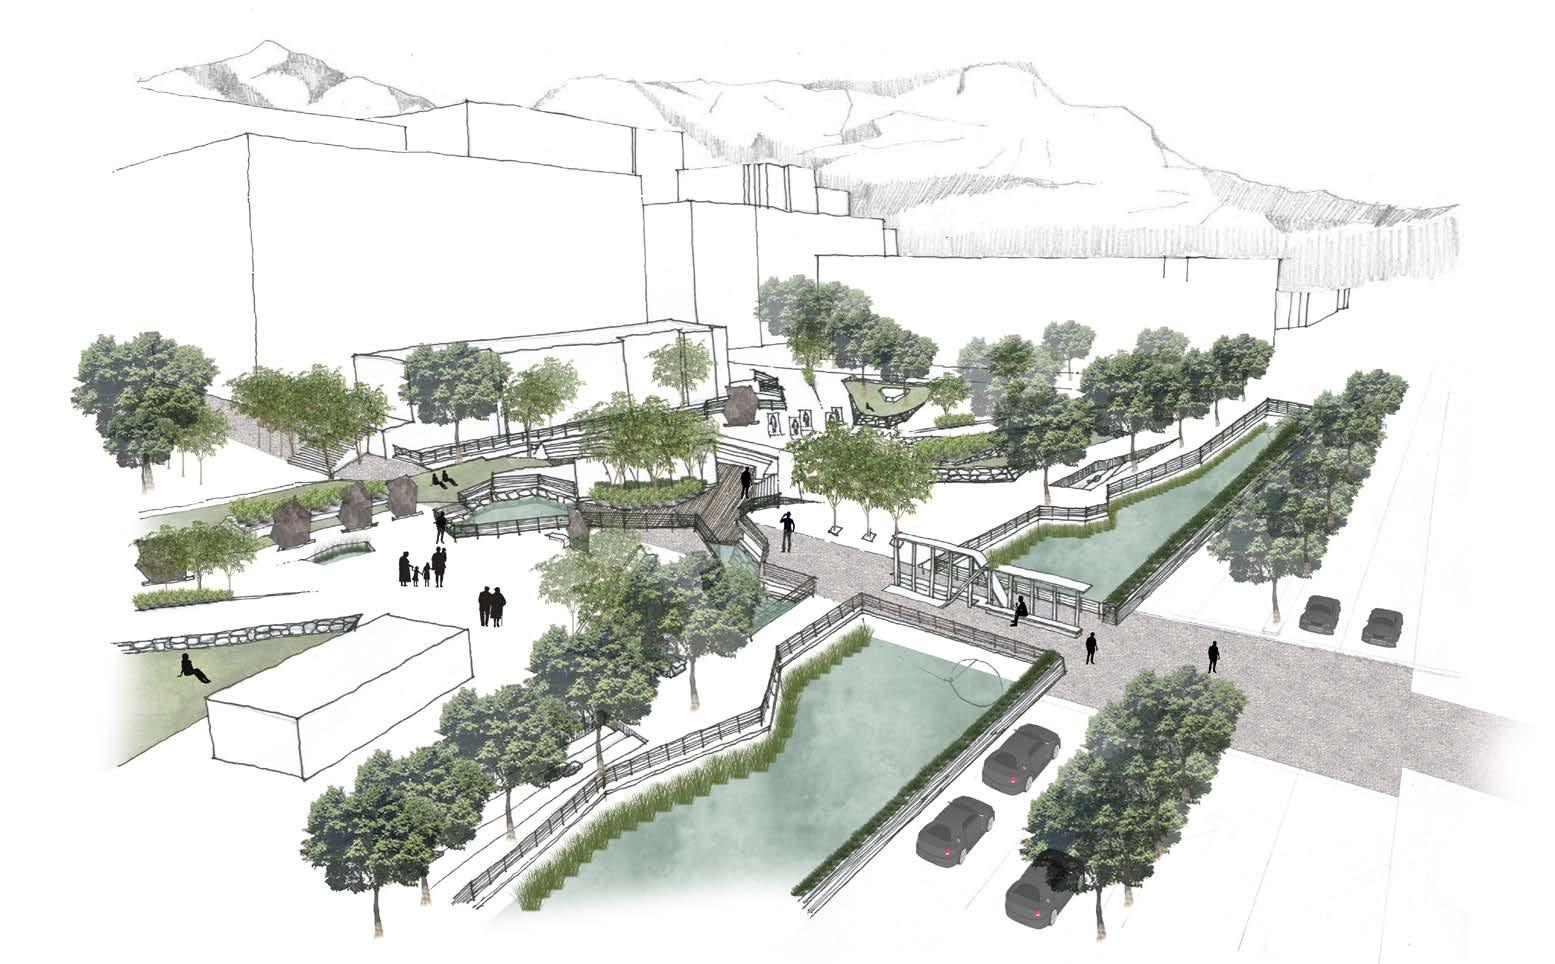 Page 8 of Landscape Architects Journal City of Sweet Waters: Re-introducing the city of Cape Town's ancient water system by Nabeelah Kader Hashim